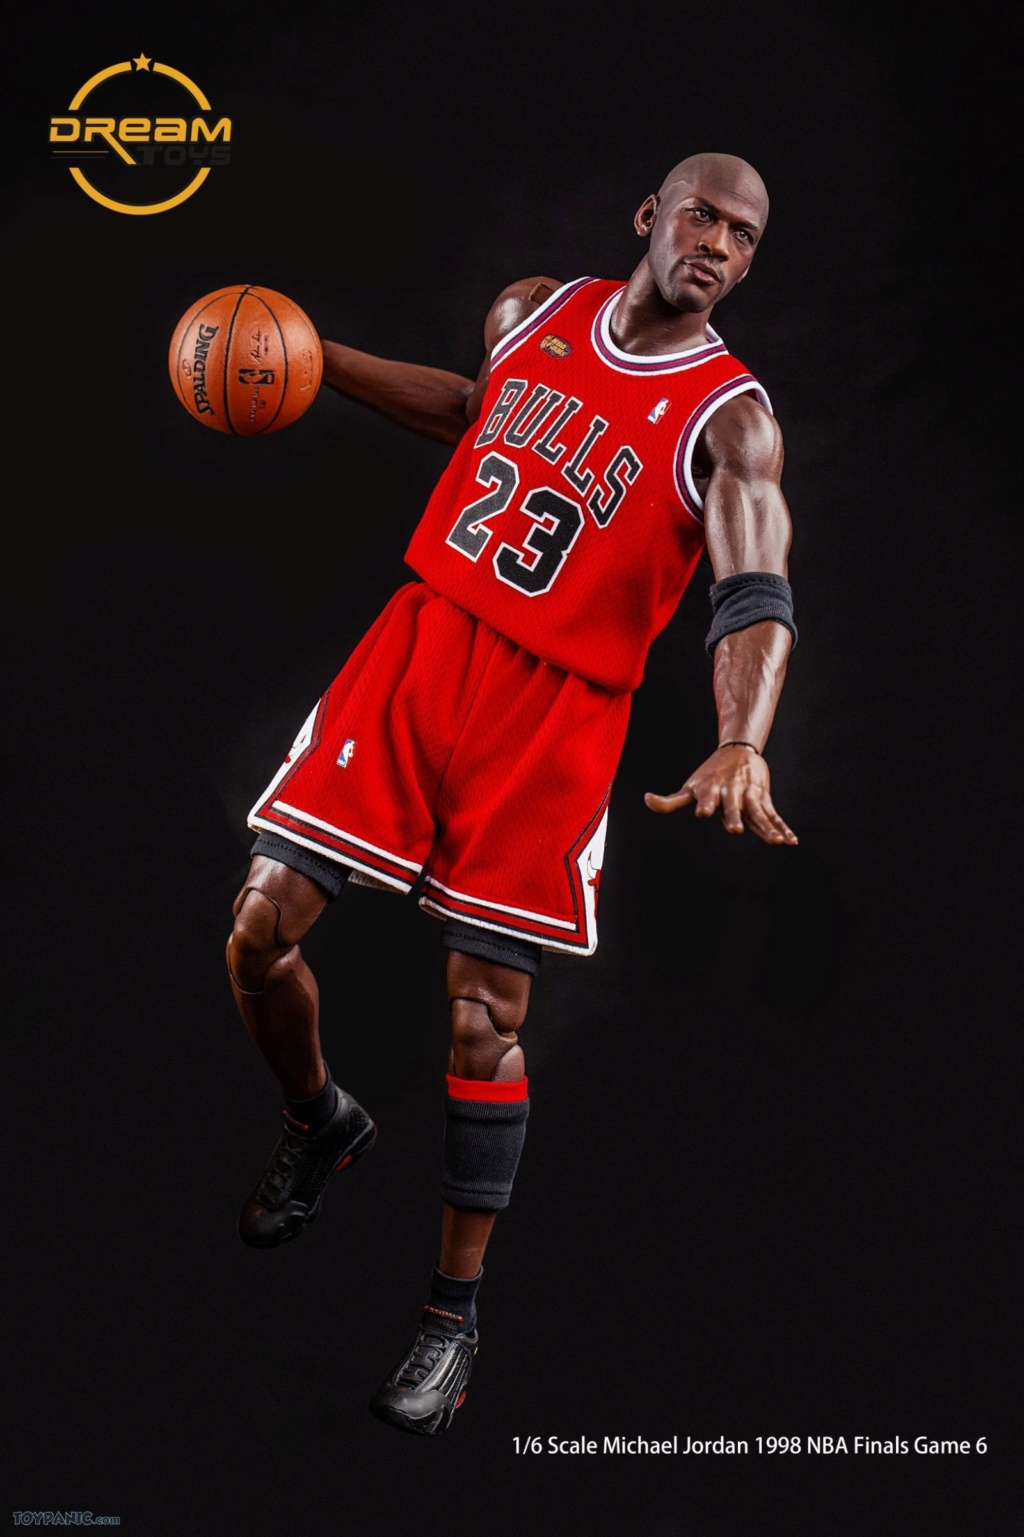 athlete - NEW PRODUCT: DreamToys: NBA Finals Jordan, Bryant, & James 1/6 scale action figures 11420220